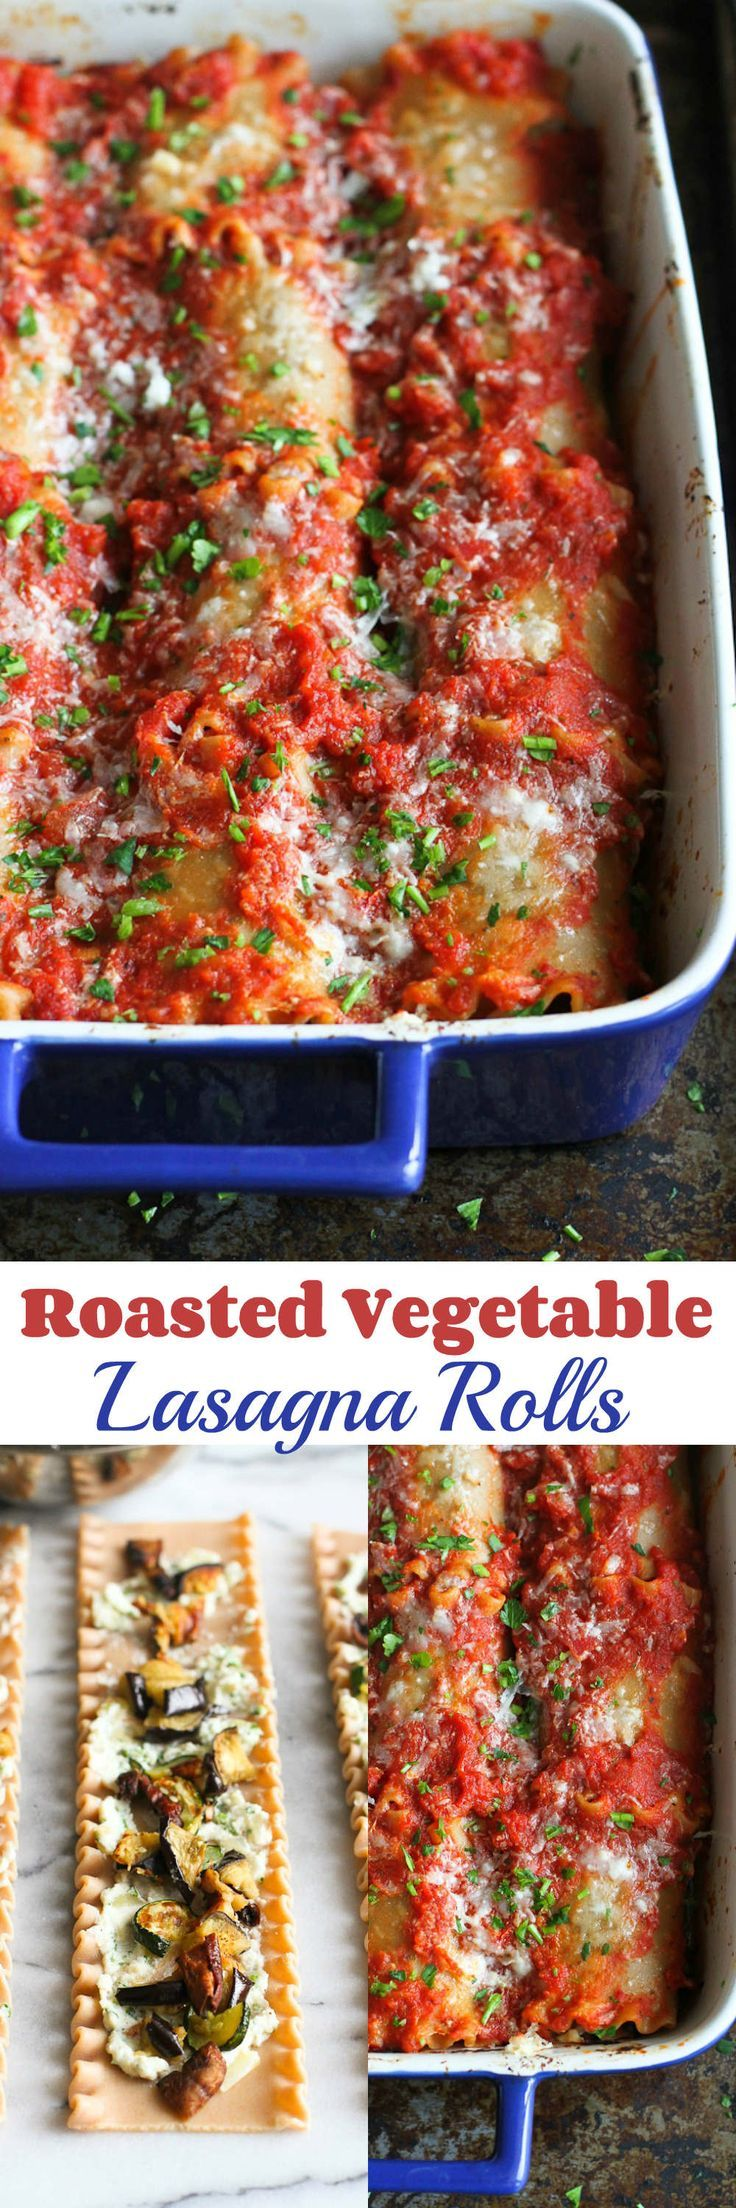 Roasted Vegetable Lasagna Rolls…All the comfort of regular lasagna, with a healthy twist! 185 calories and 5 Weight Watcher SmartPoints